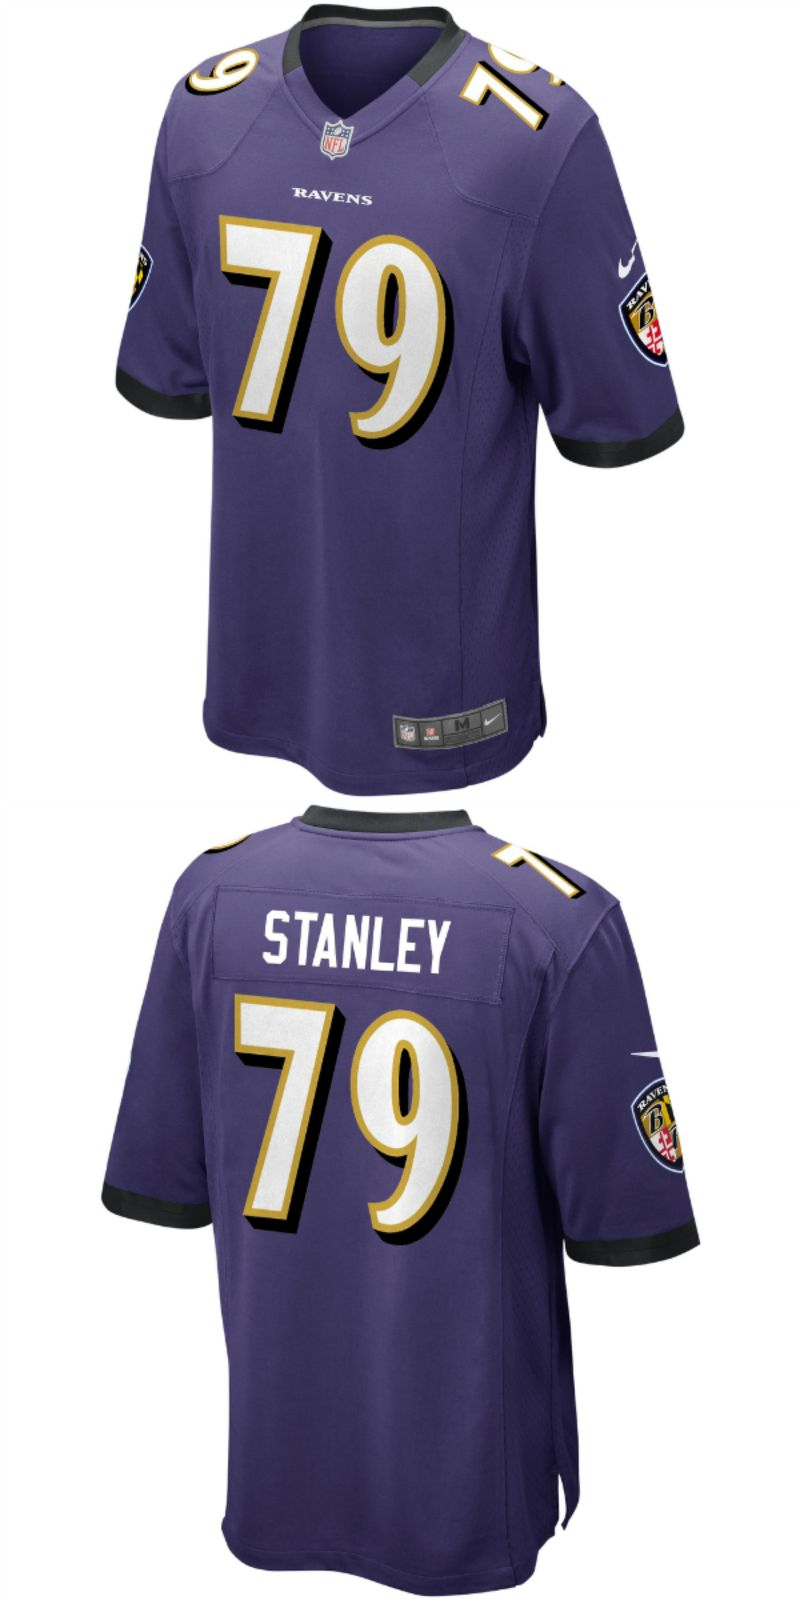 New UP TO 70% OFF. Ronnie Stanley Baltimore Ravens Nike Game Jersey